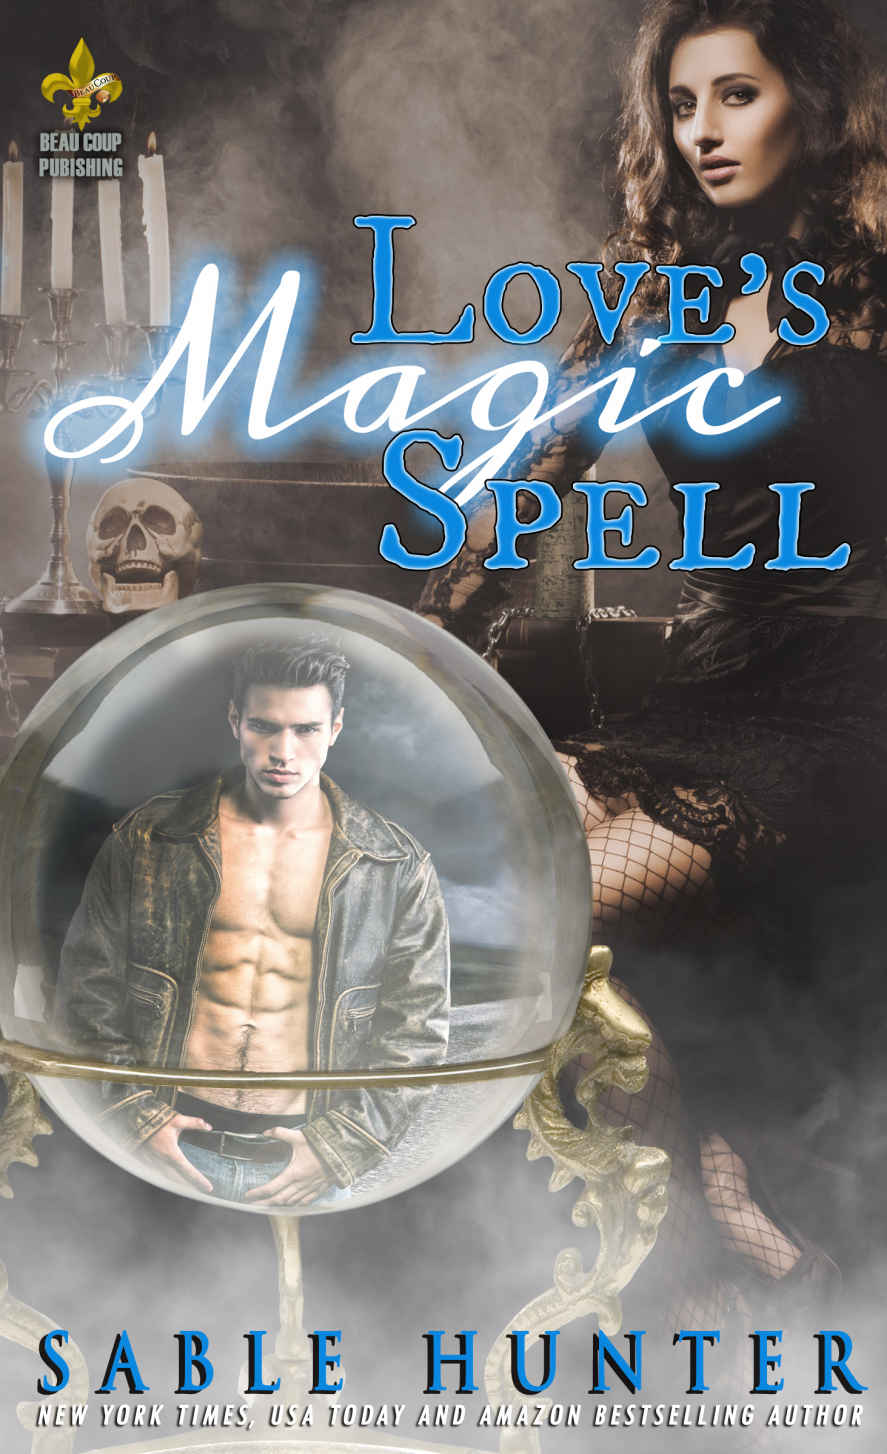 Love's Magic Spell: A Red Hot Treats Story 1st Edition Pdf Free Download